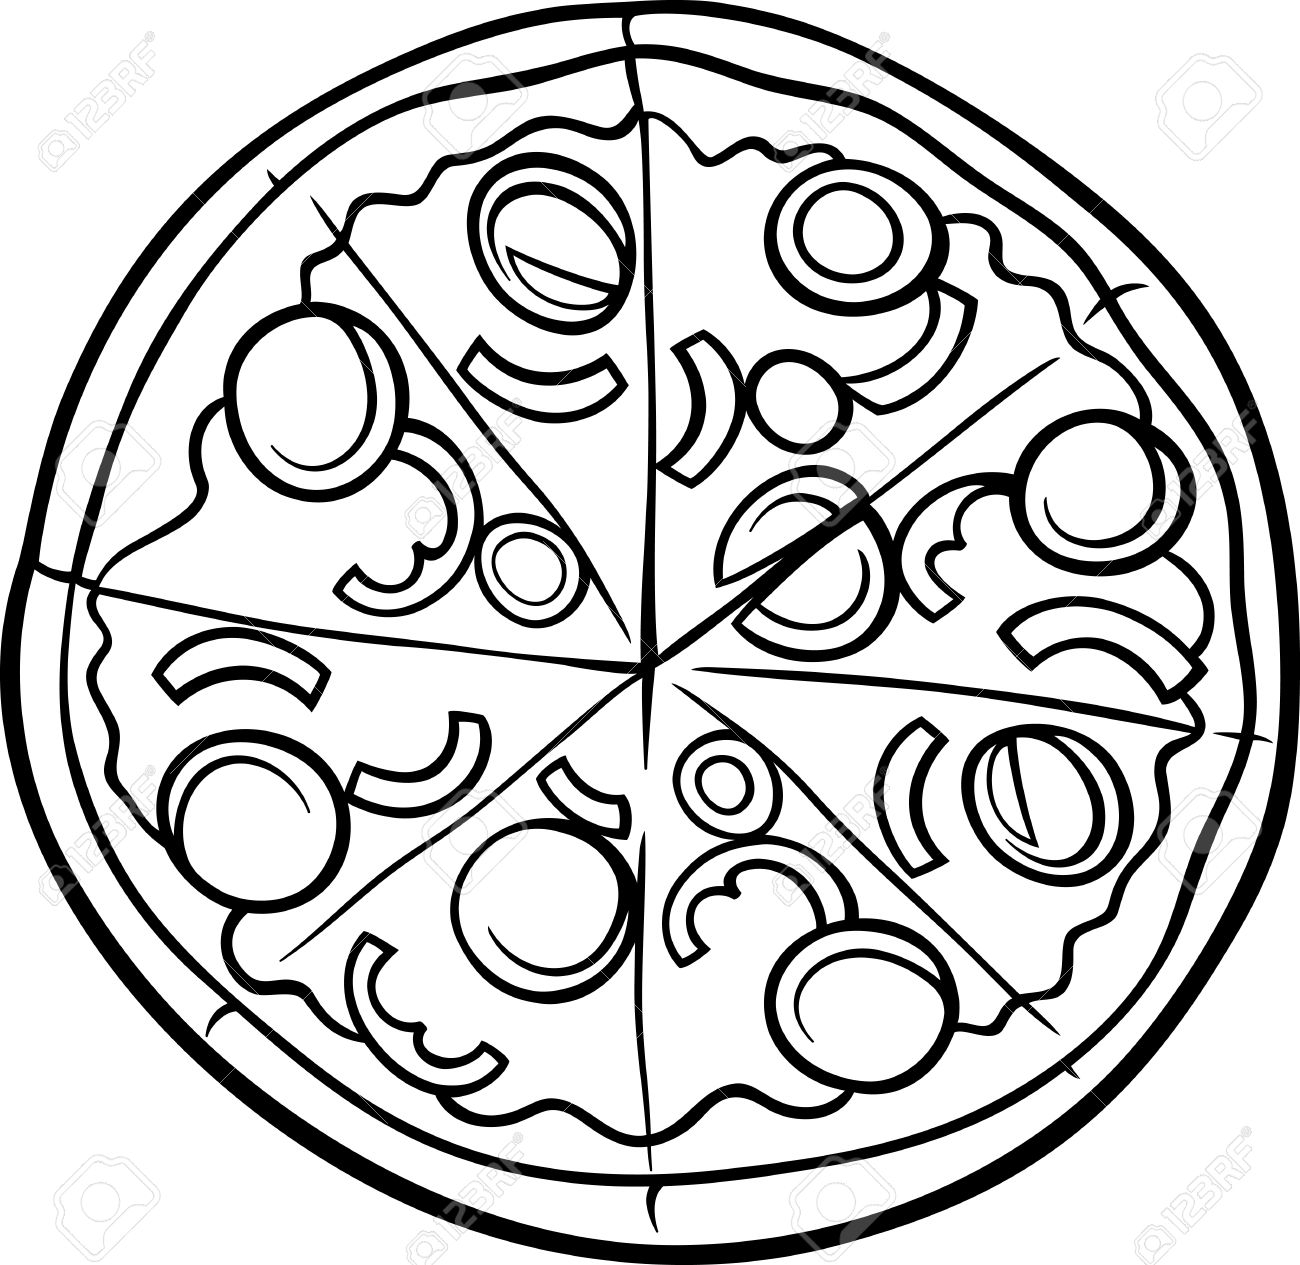 Black And White Whole Pie Clipart.